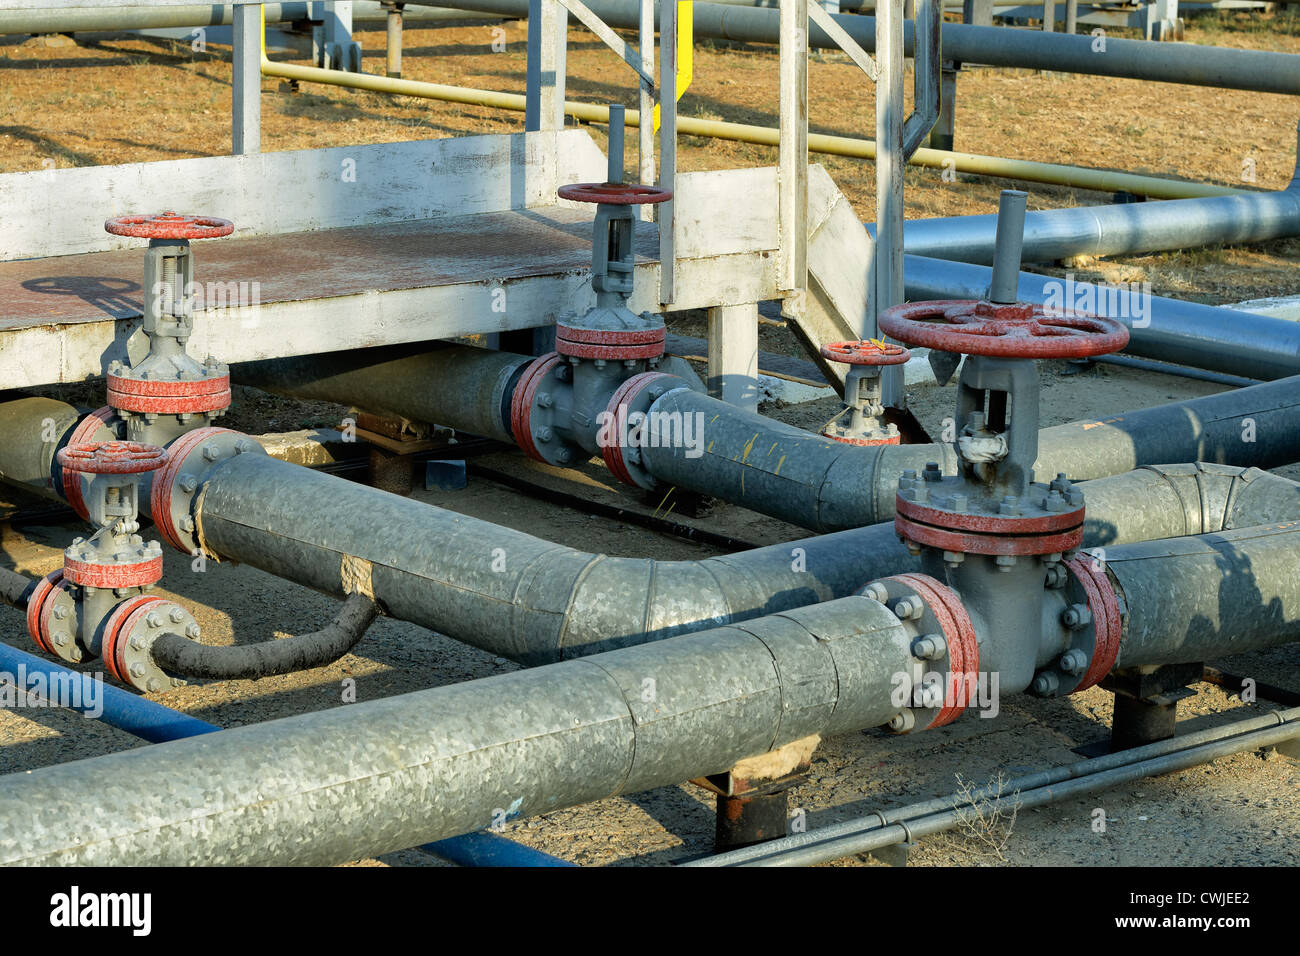 valve, industry, pipes, pipeline, steel, oil, pressure, equipment, tube, metal, technology, flanges, bolts, factory, - Stock Image